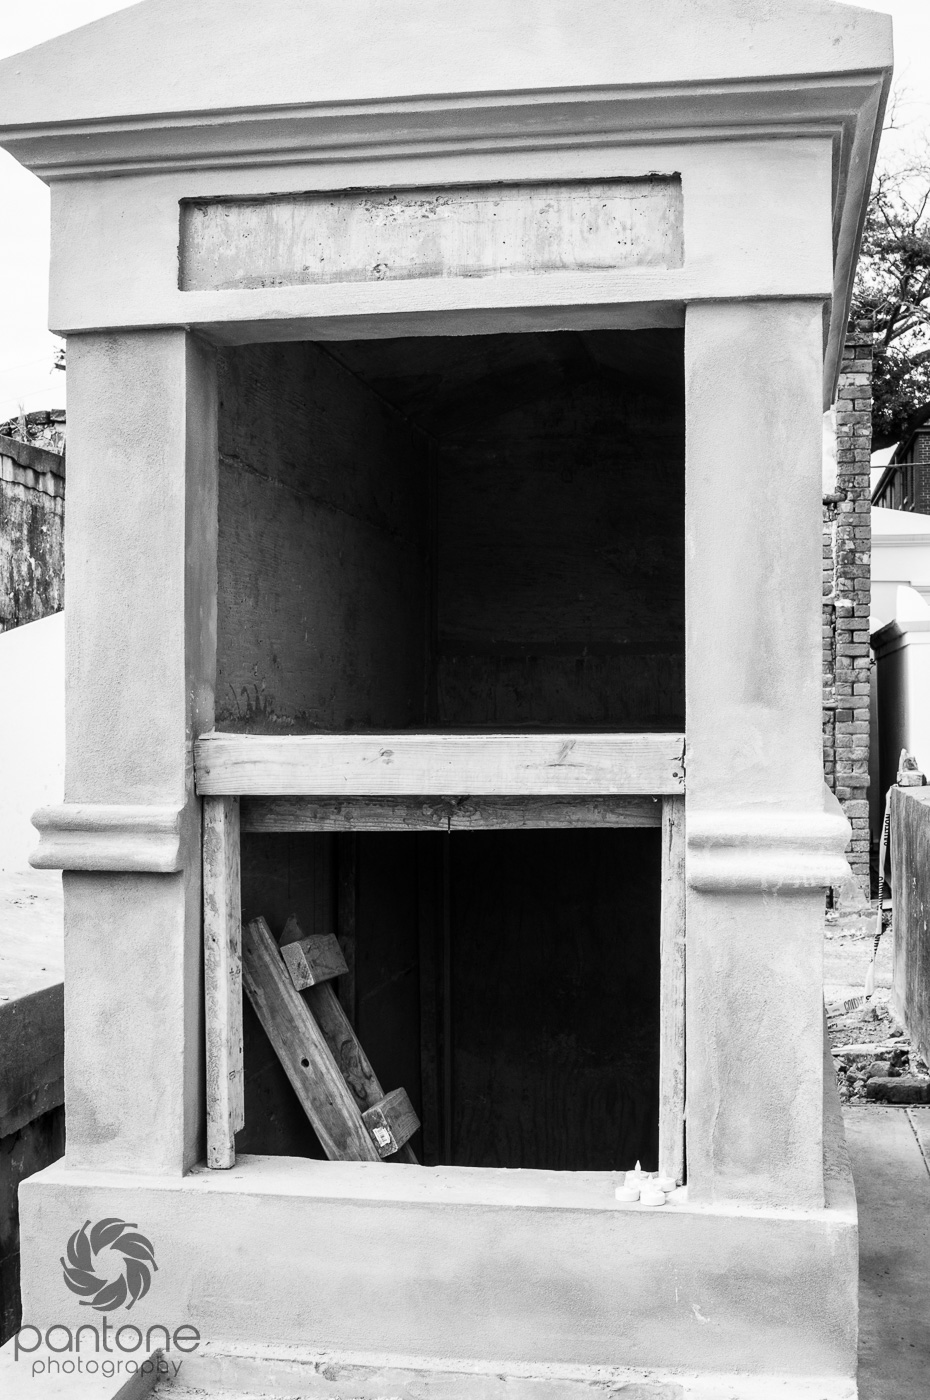 November 14, 2013 St. Louis Cemetery No. 1